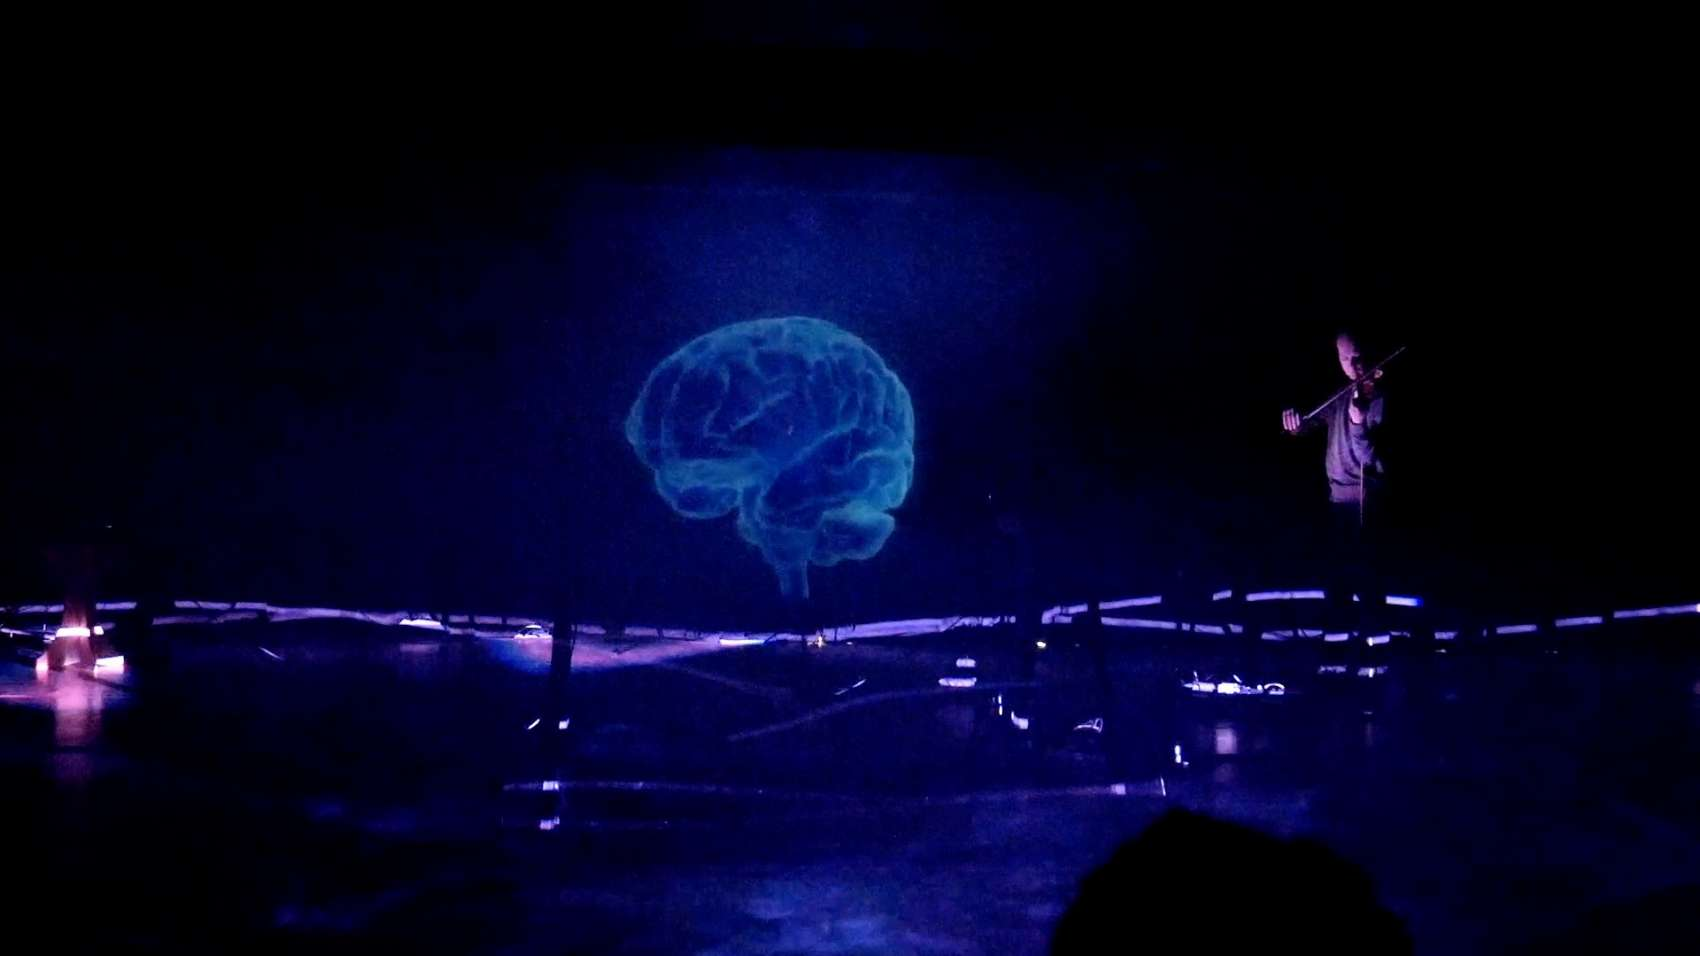 In a dark space we see a giant projection of a brain and a person playing violin